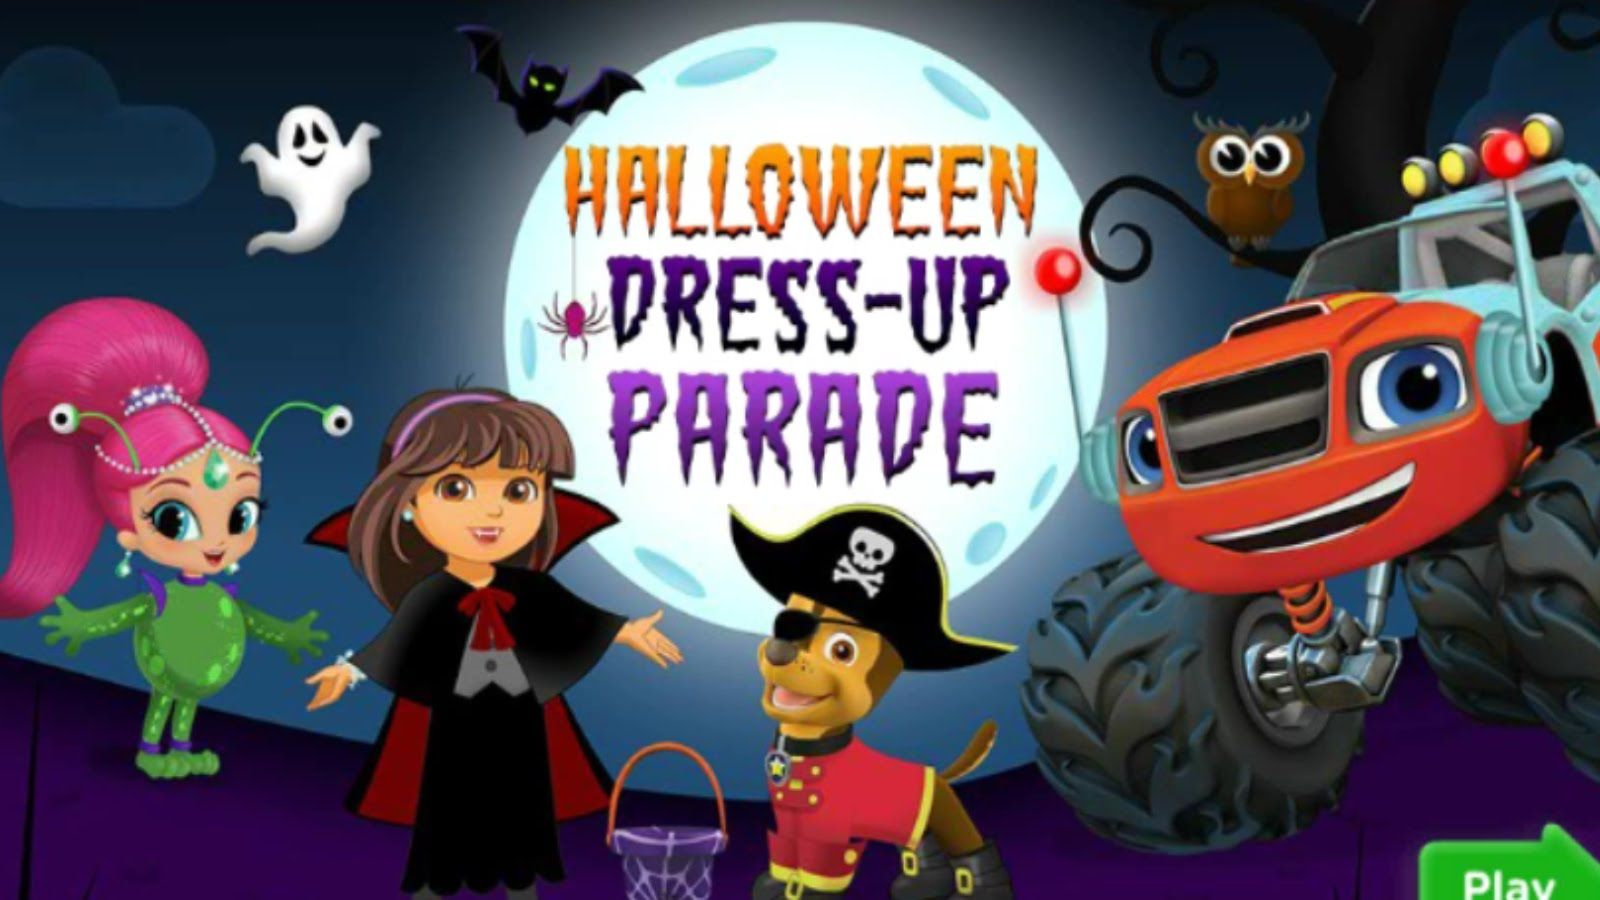 halloween dress up parade - Free Halloween Dress Up Games